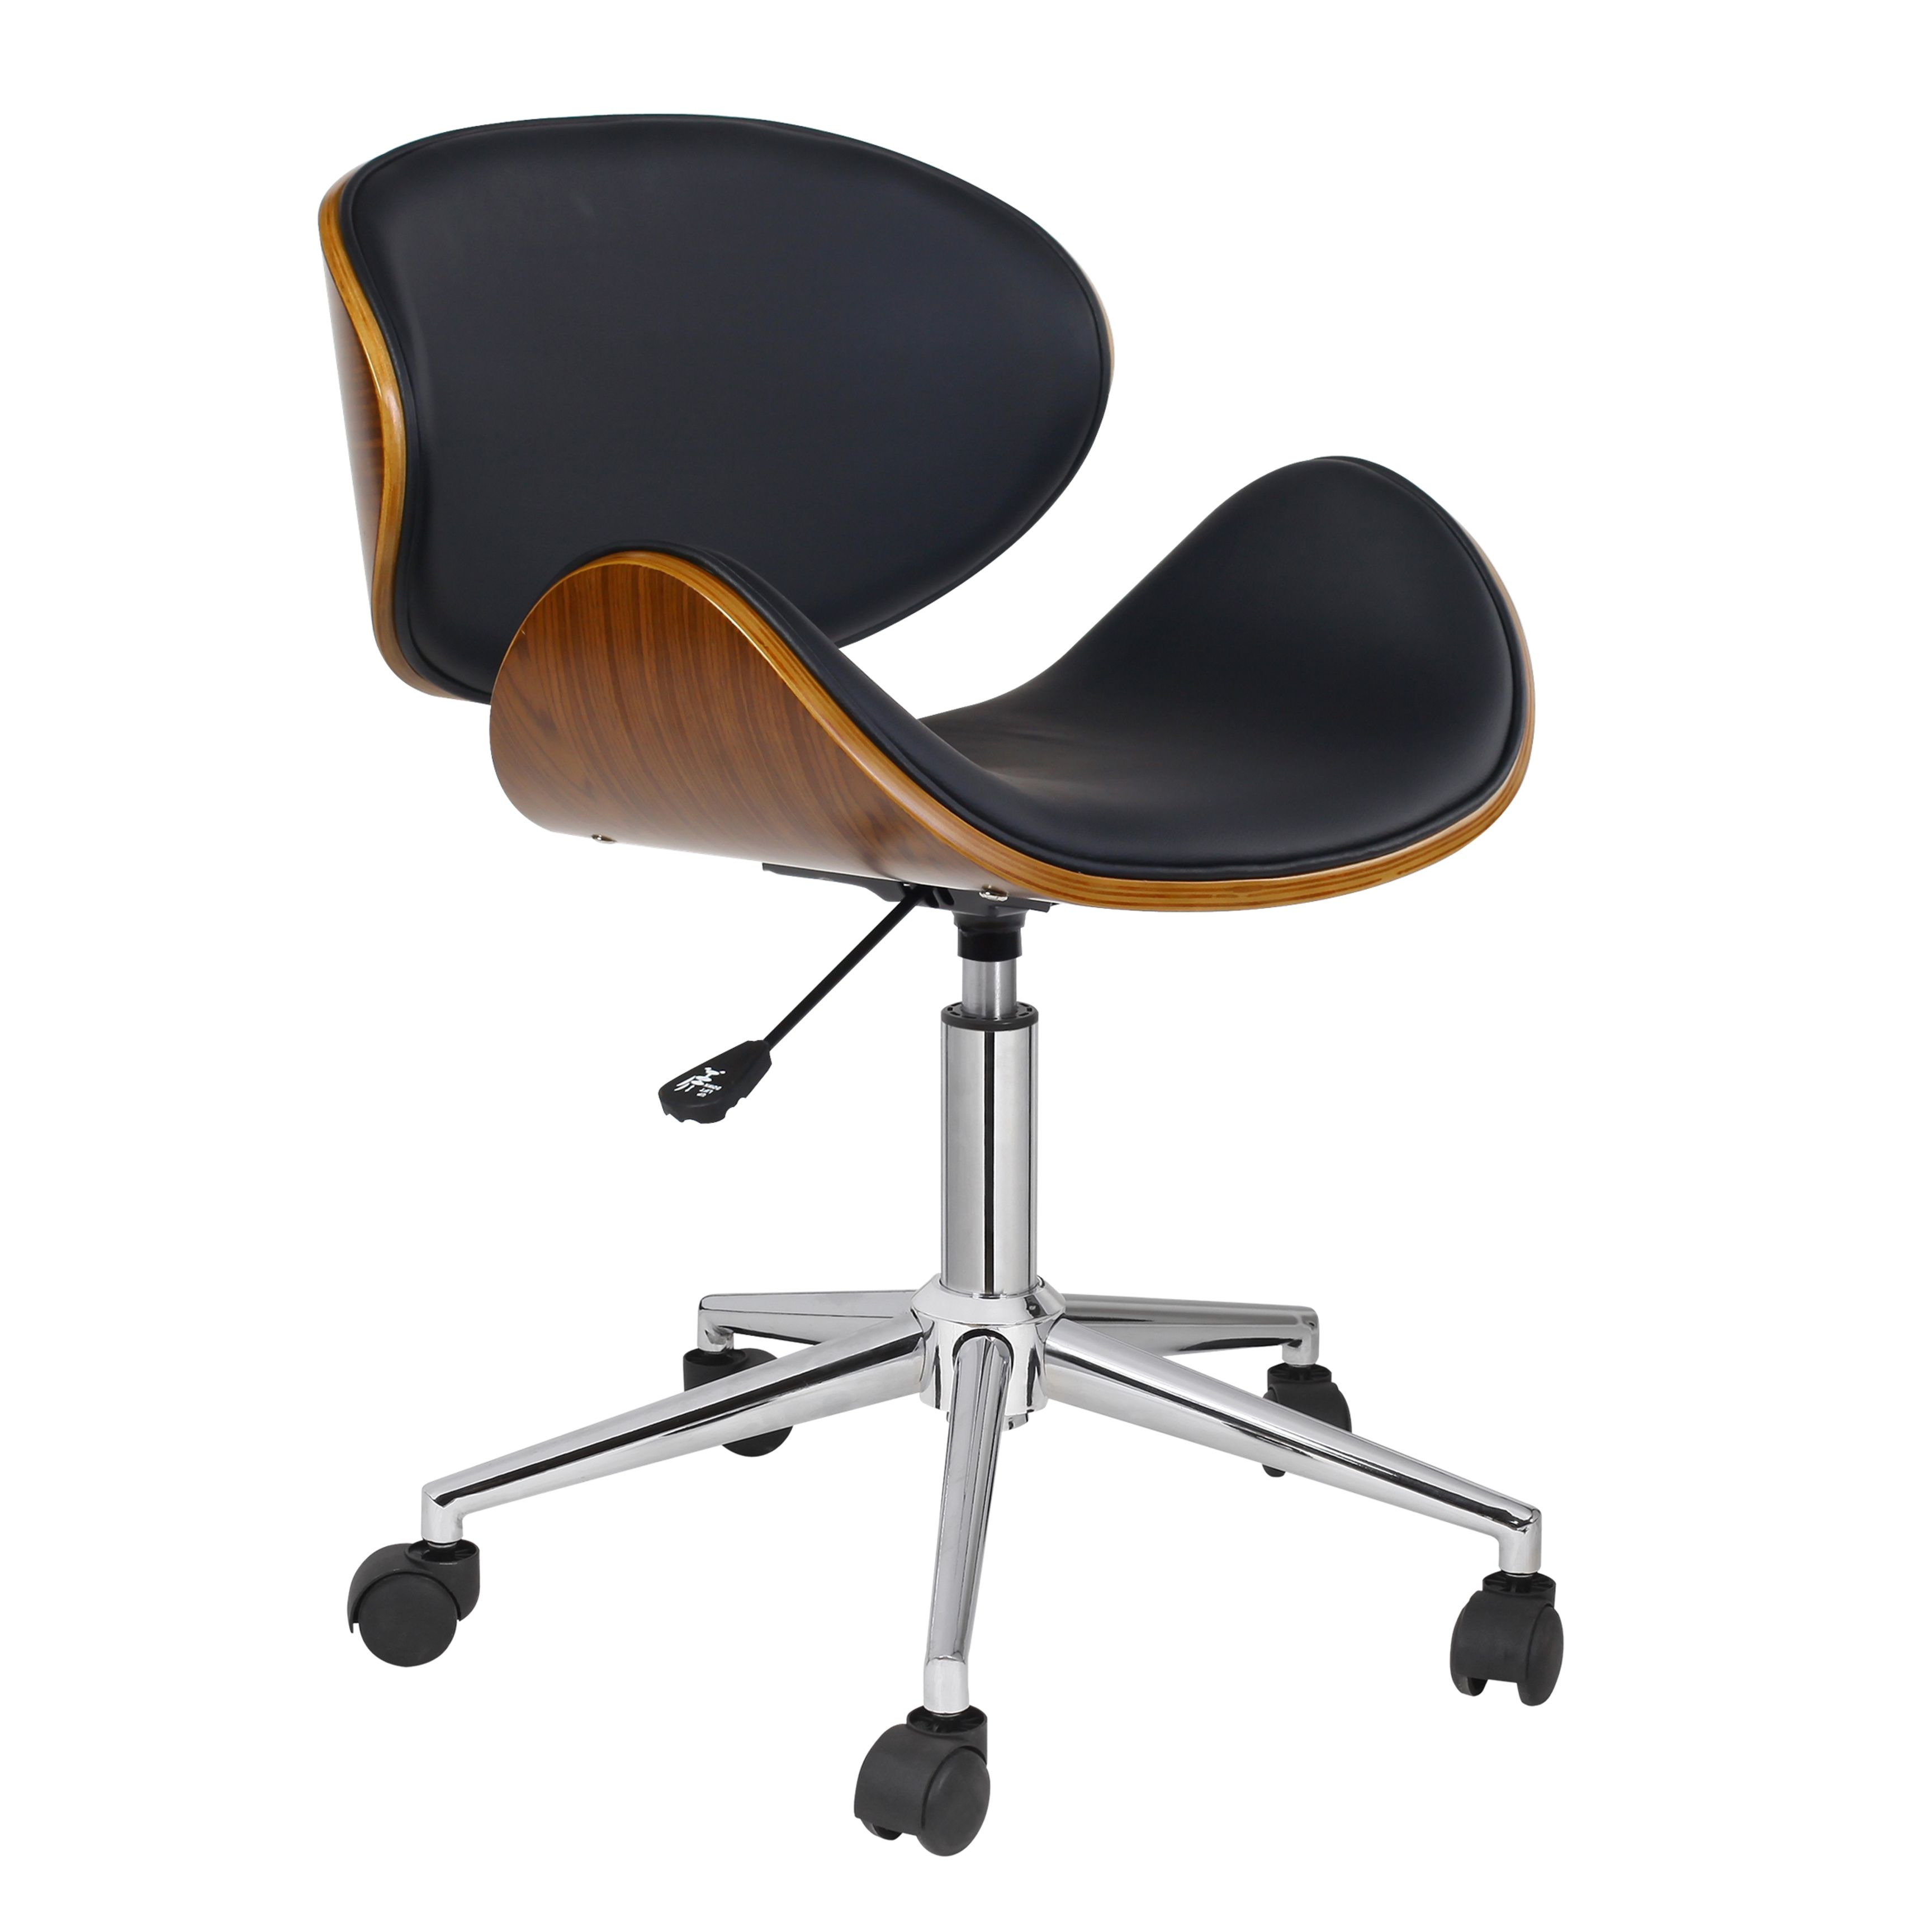 Overstock Office Furniture: Home Office Furniture: Free Shipping On Orders Over $45 At